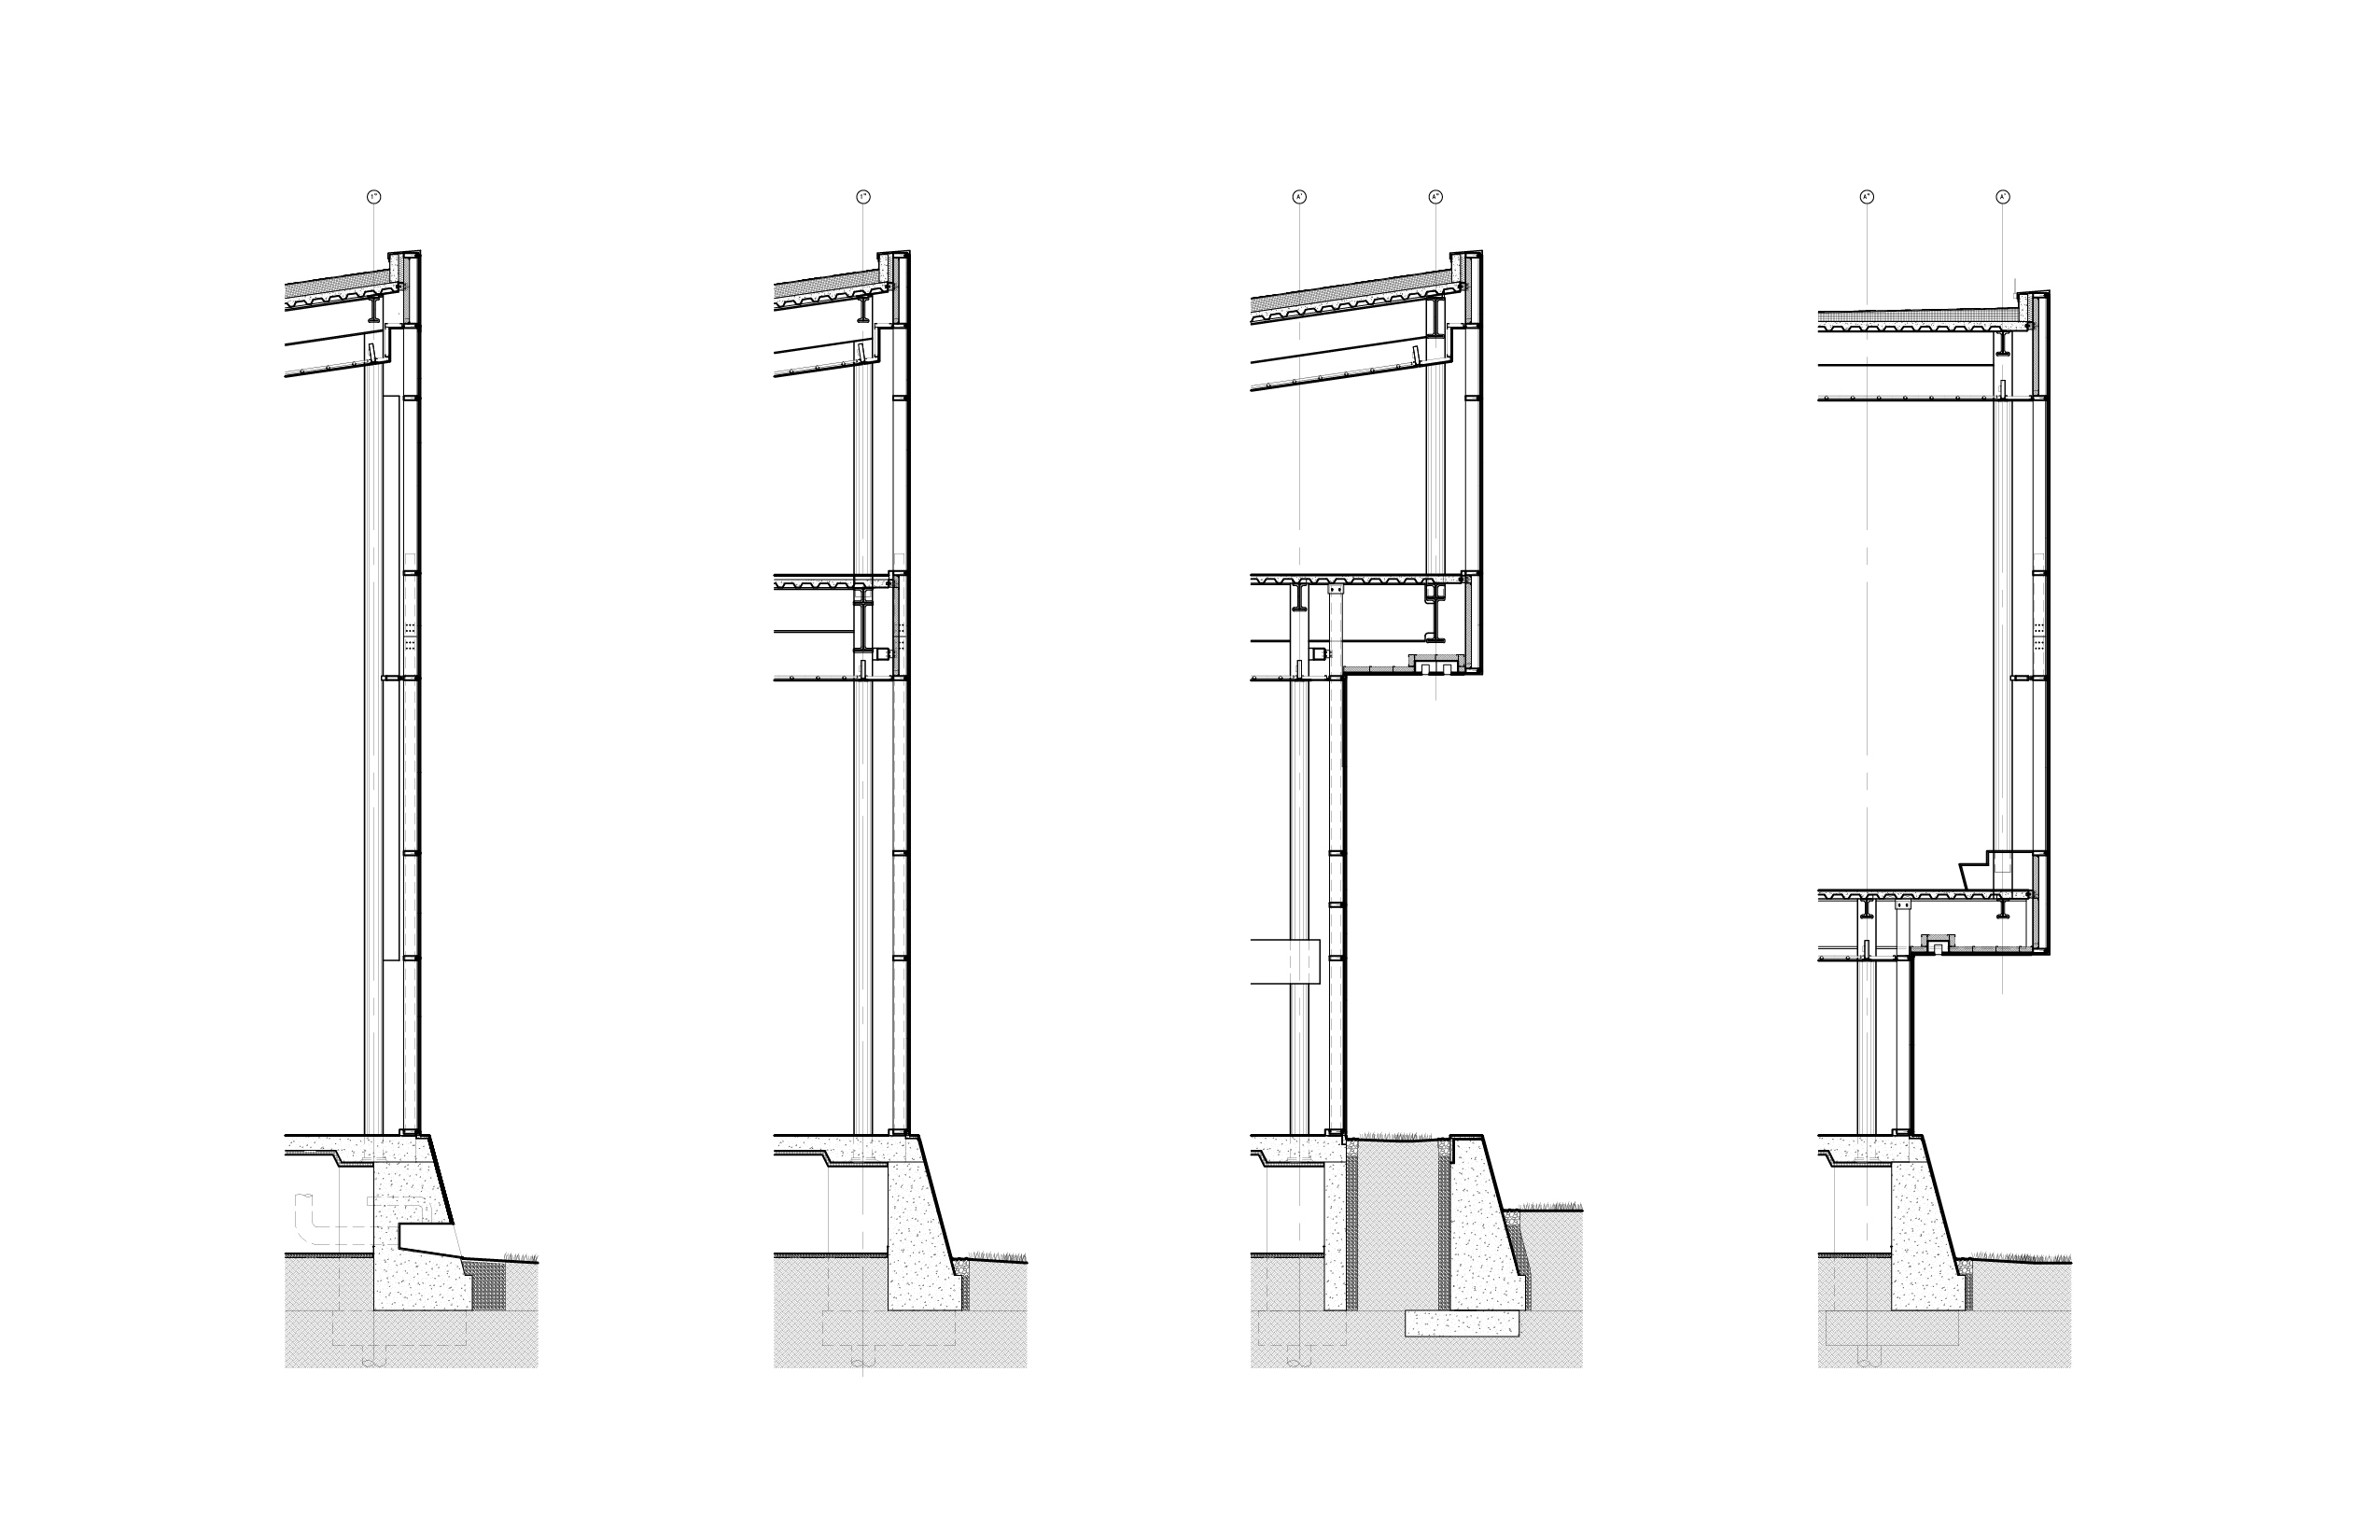 Section of the facade system consisting of prefabricated, four-sided structural silicone glazing cassette system